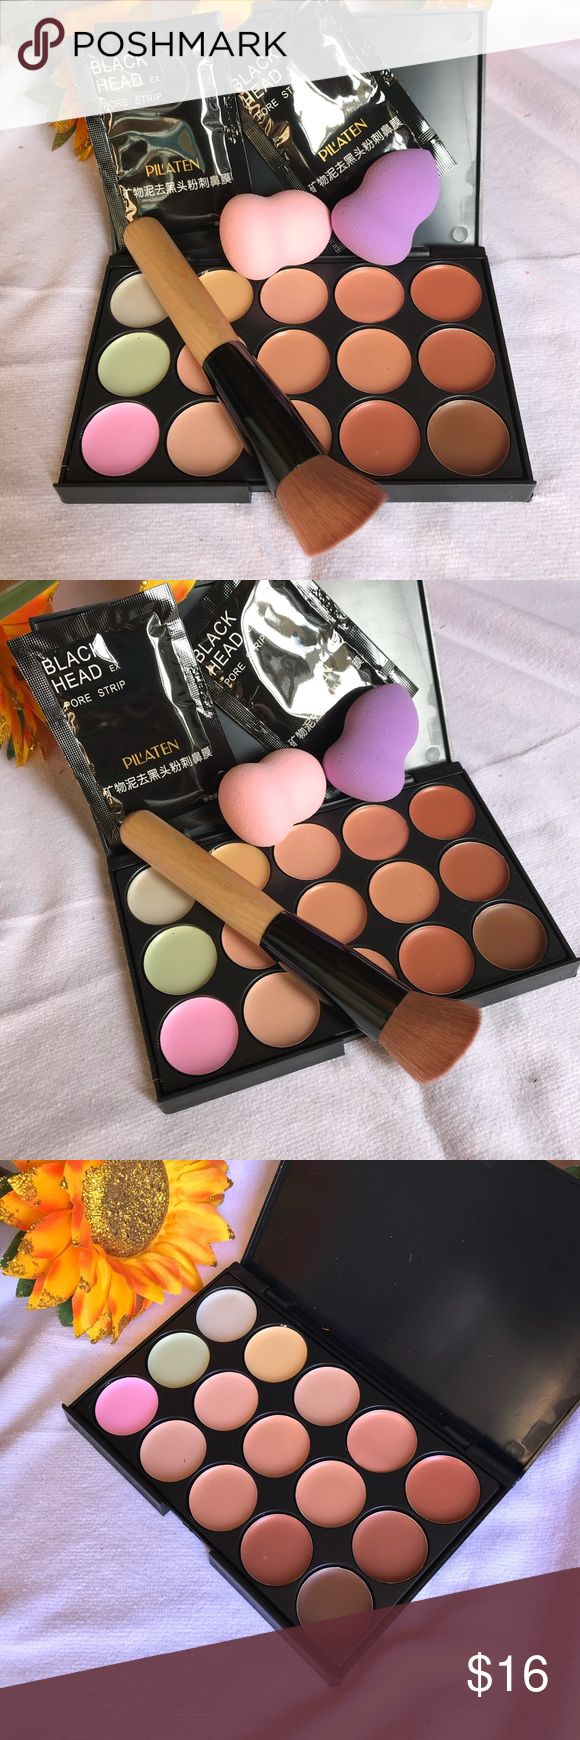 🎈SALE🎈 Bundle Makeup Brush Palette Set Bundle 15 Colors Contours Face Cream Makeup Concealer Palette +1 Brush + 2x Sponge + 2 Blackheads Removals Marks  Material: Foundation cream Made of excellent material, safe and soft for your facial skin Combines 15 colors in one palette, can be mixed to help create different looks Used as foundation primer, foundation, concealer, camouflage and eyeshadow base Great for shading, light weight but wearable. It's great for highlight and contouring for…